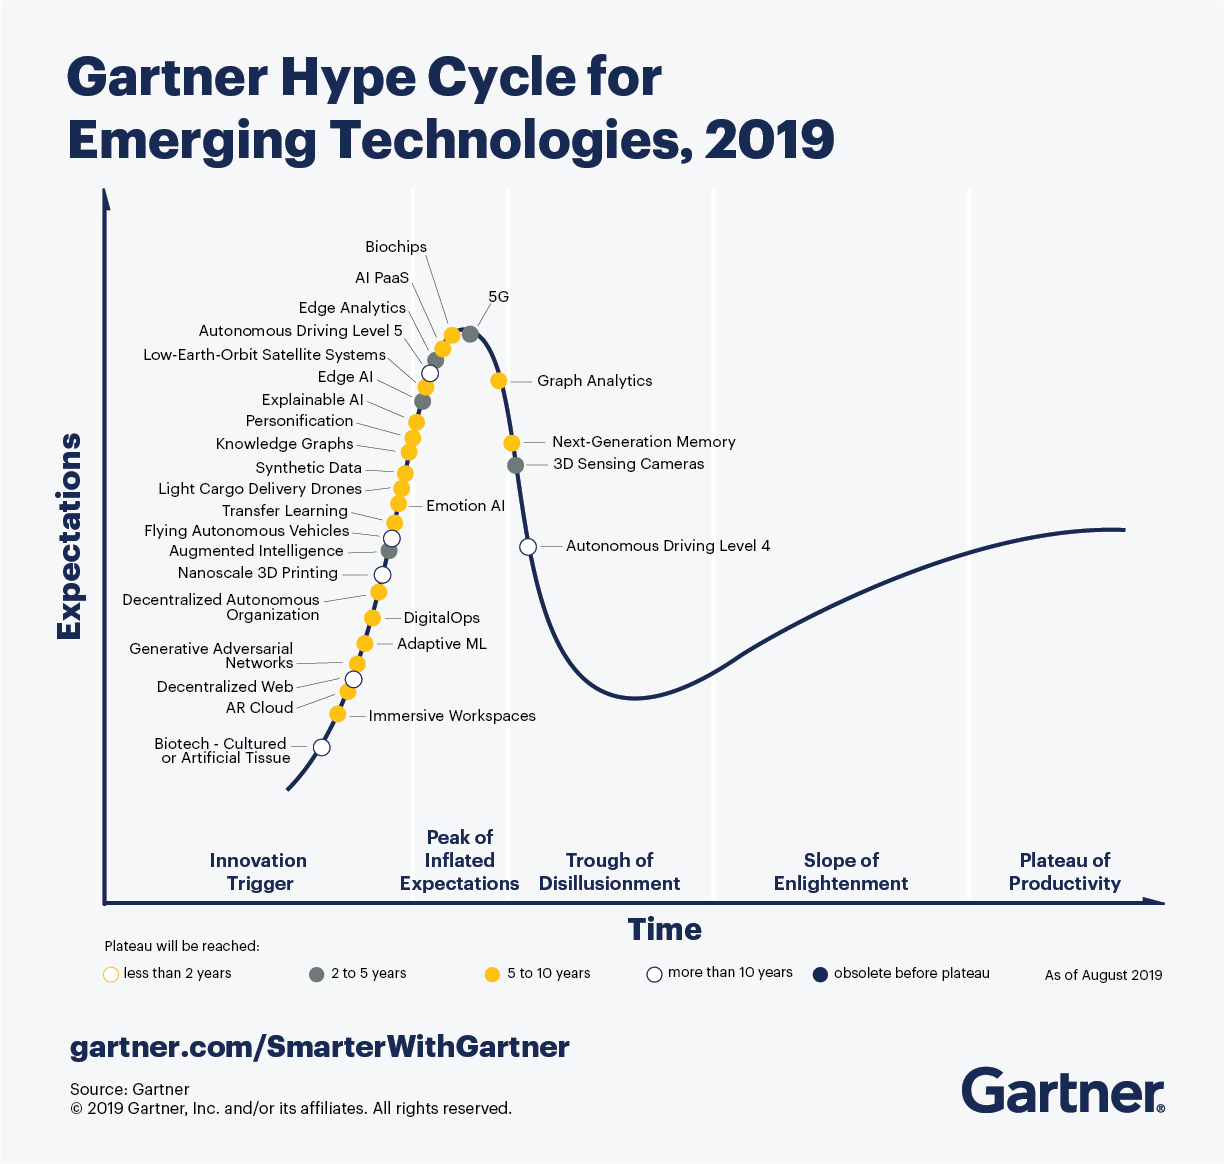 CTMKT_741609_CTMKT_for_Emerging_Tech_Hype_Cycle_LargerText-1.png